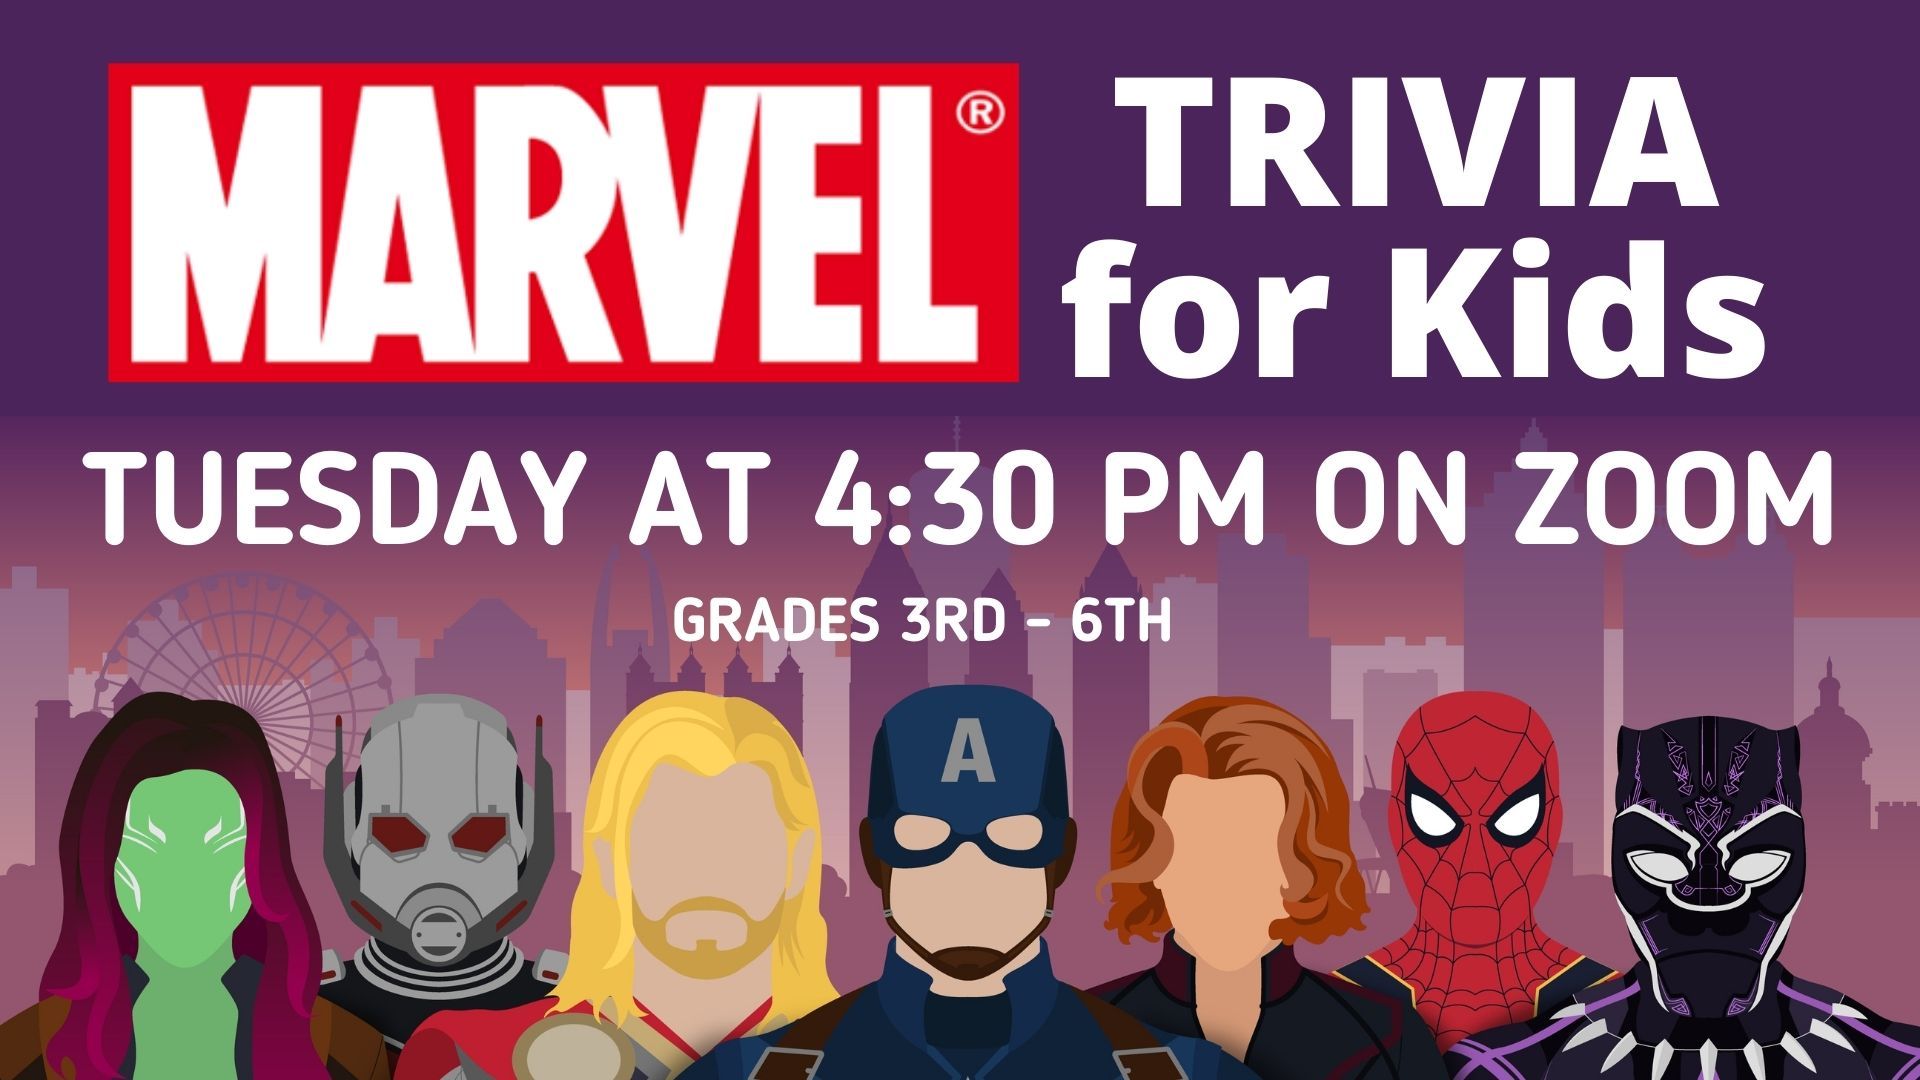 Marvel Trivia for Kids